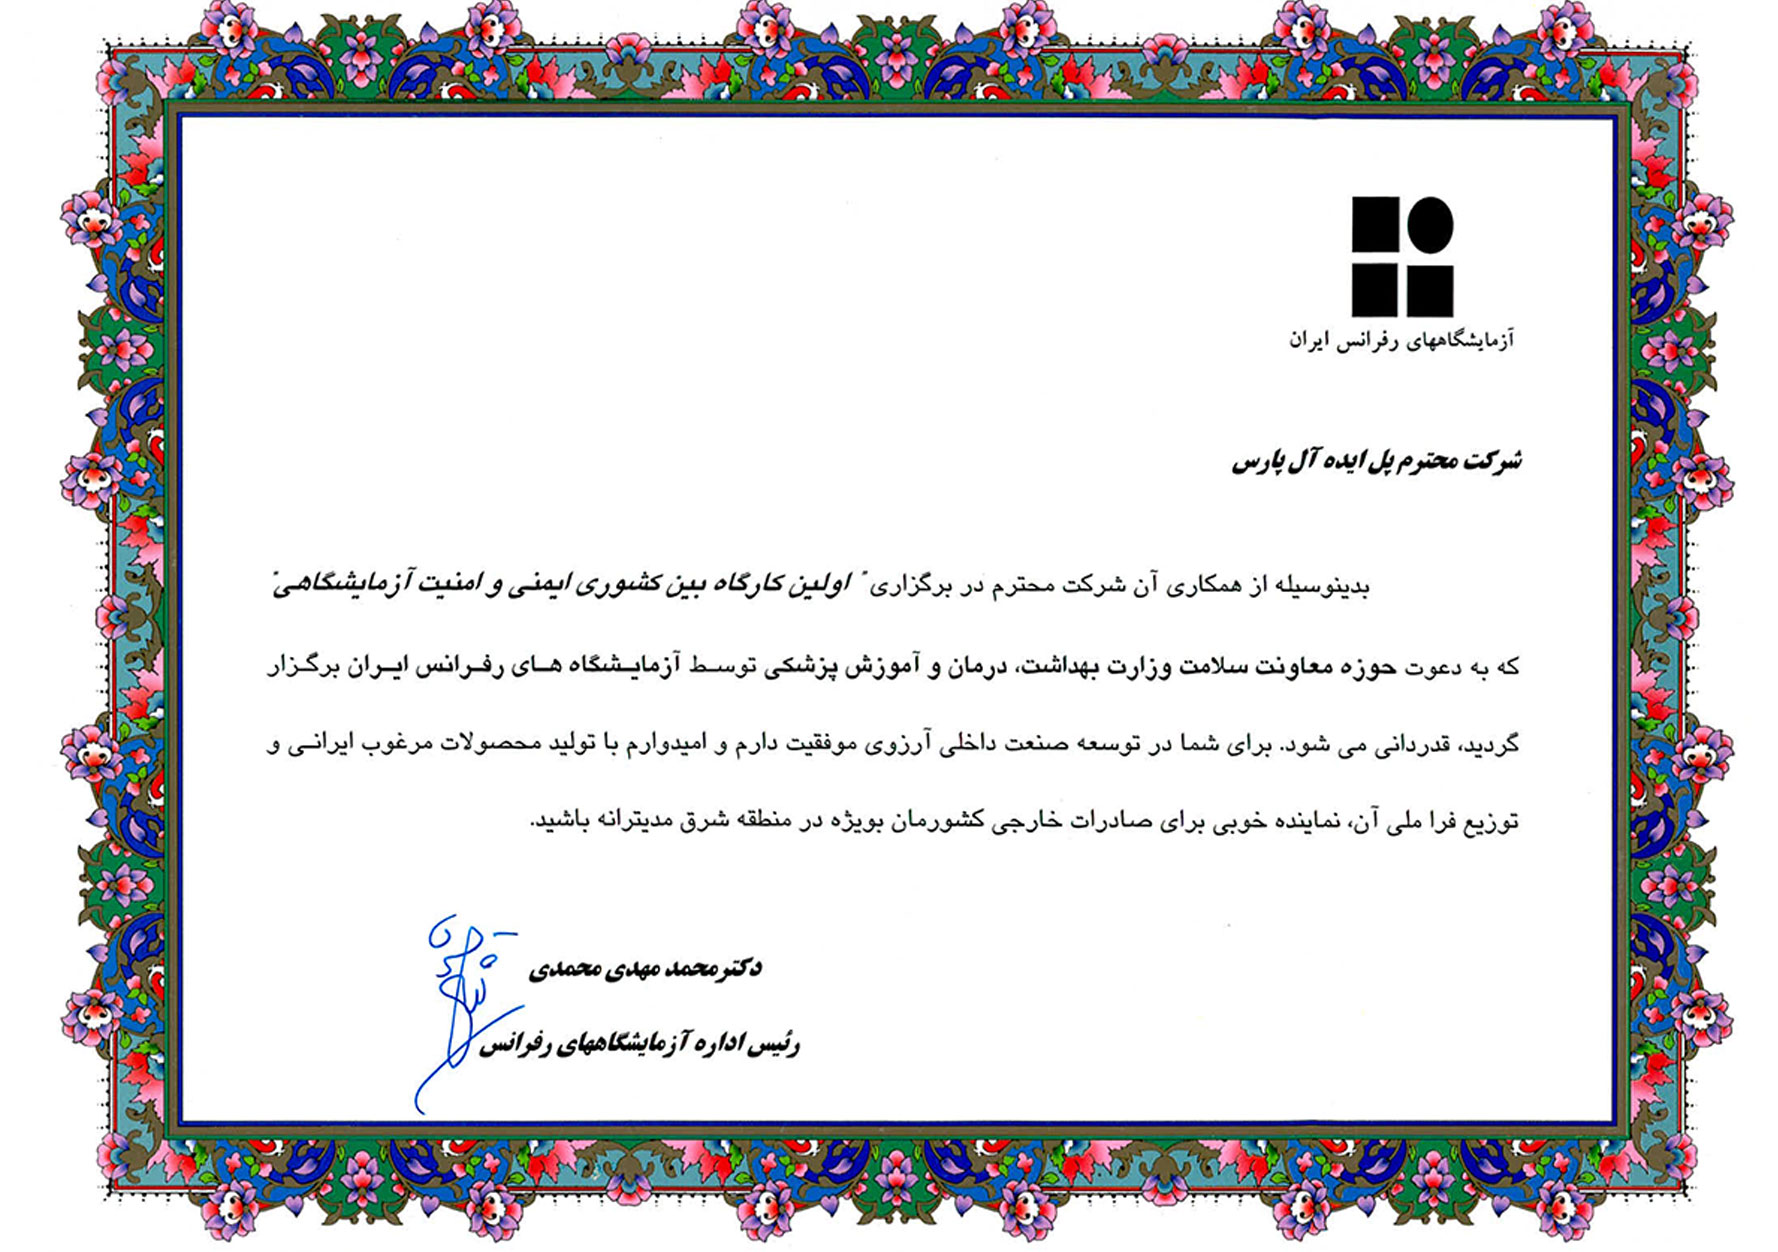 Certificate from the Iranian Laboratory Association